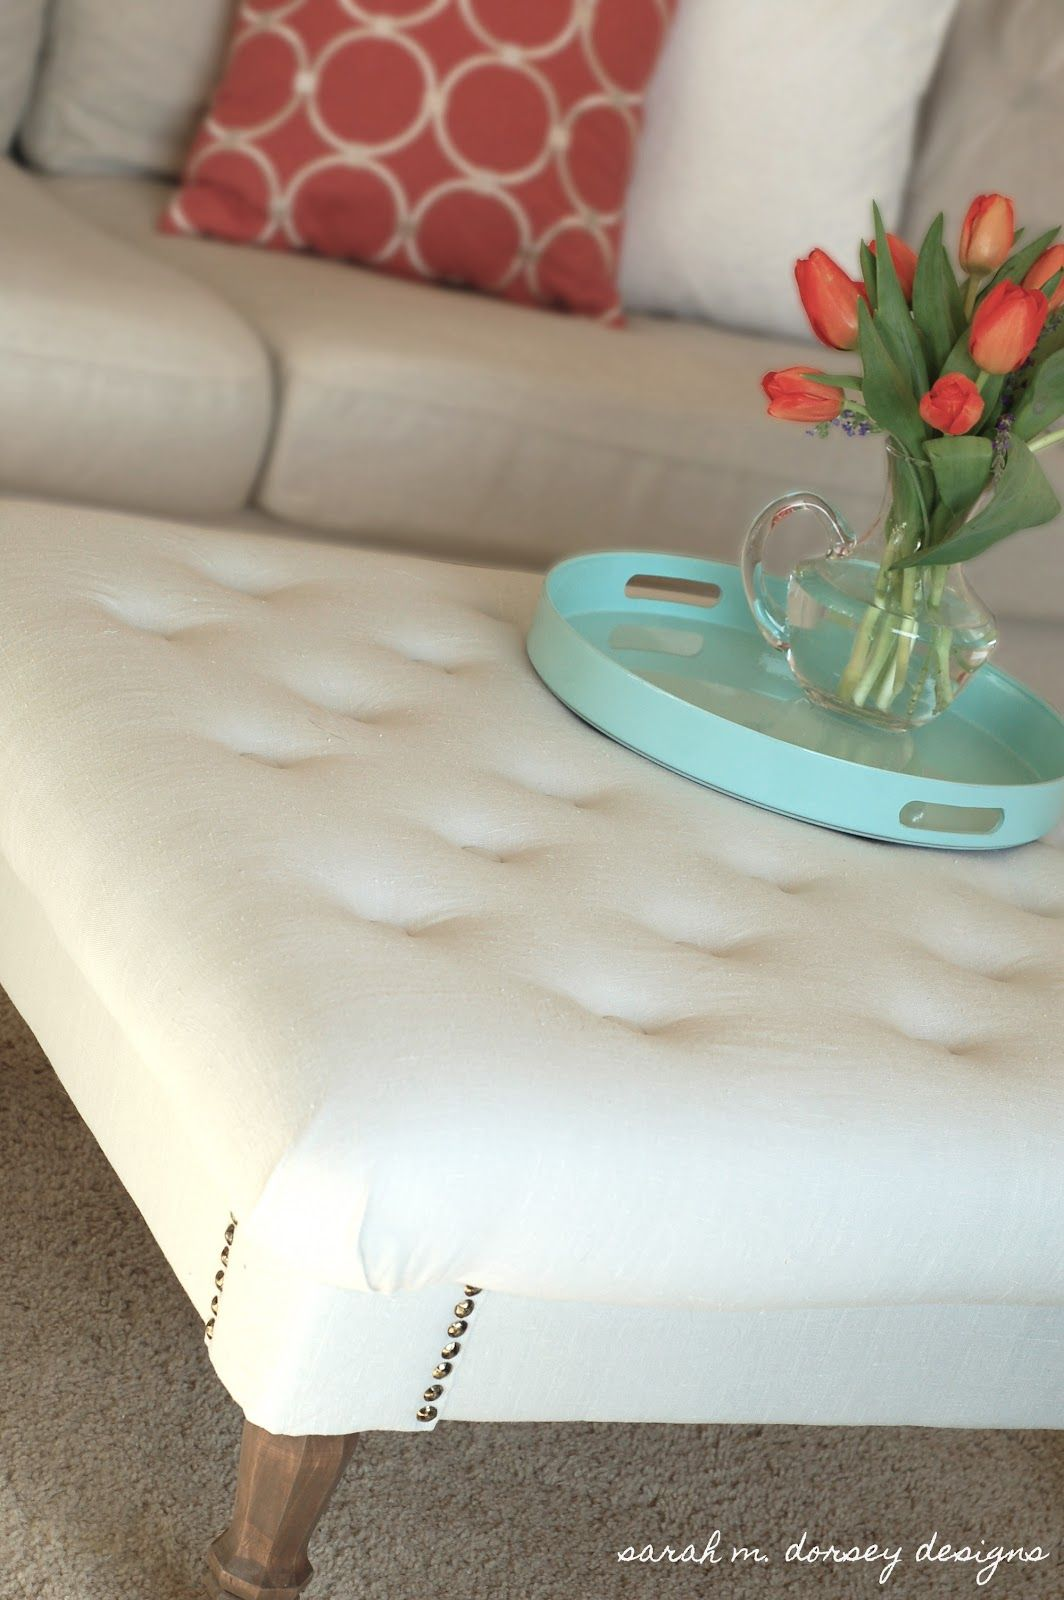 Stupendous Sarah M Dorsey Designs Diy Tufted Ottoman Complete Ncnpc Chair Design For Home Ncnpcorg